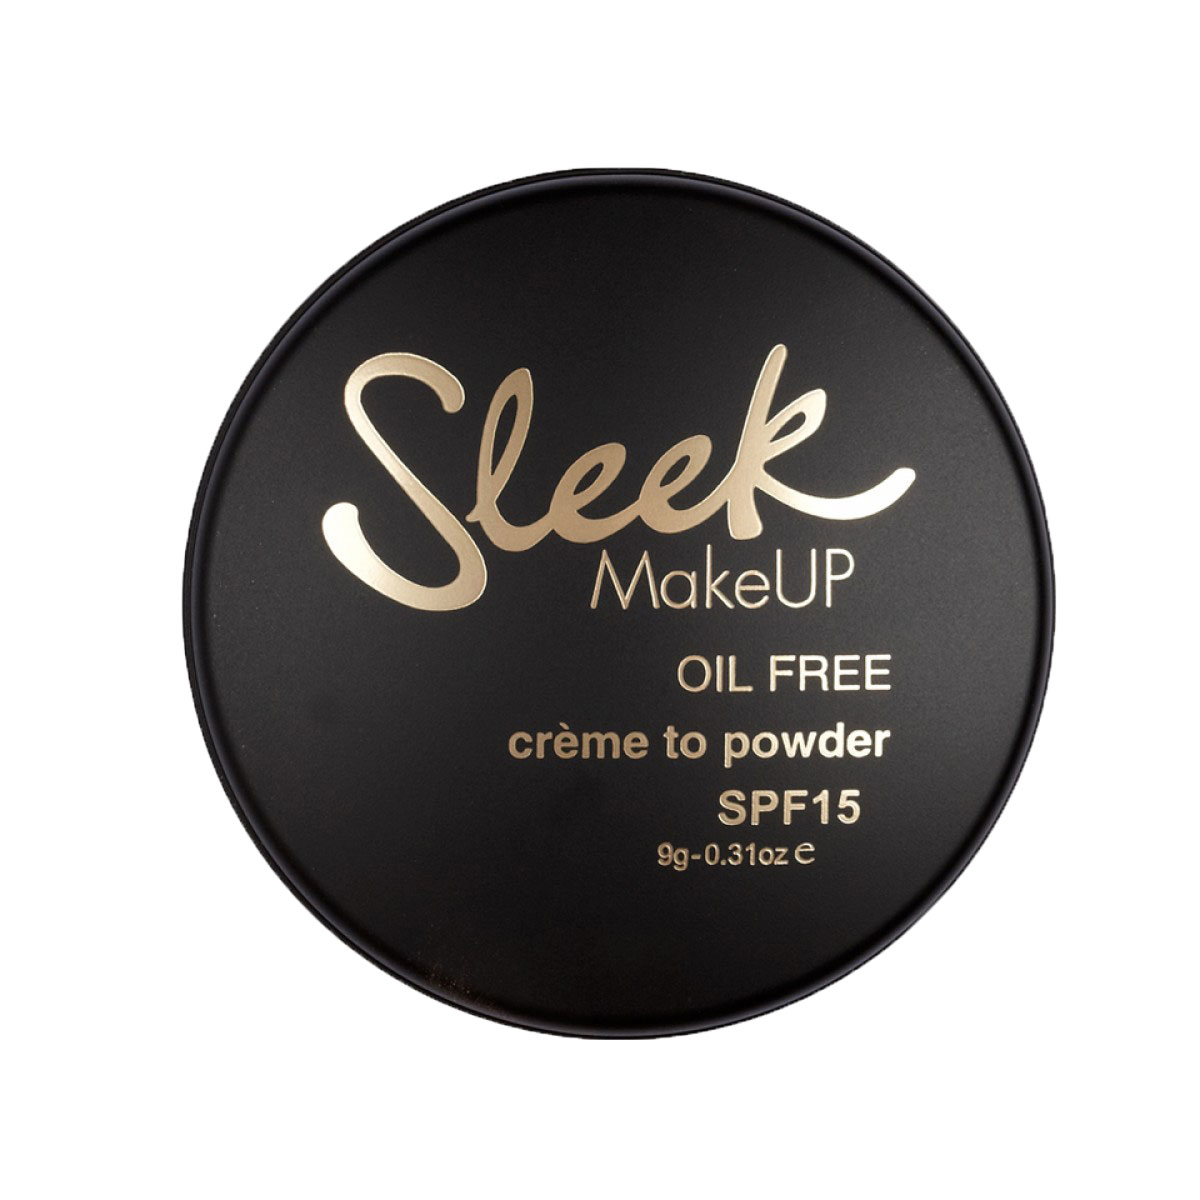 Sleek Crme To Powder in Fudge